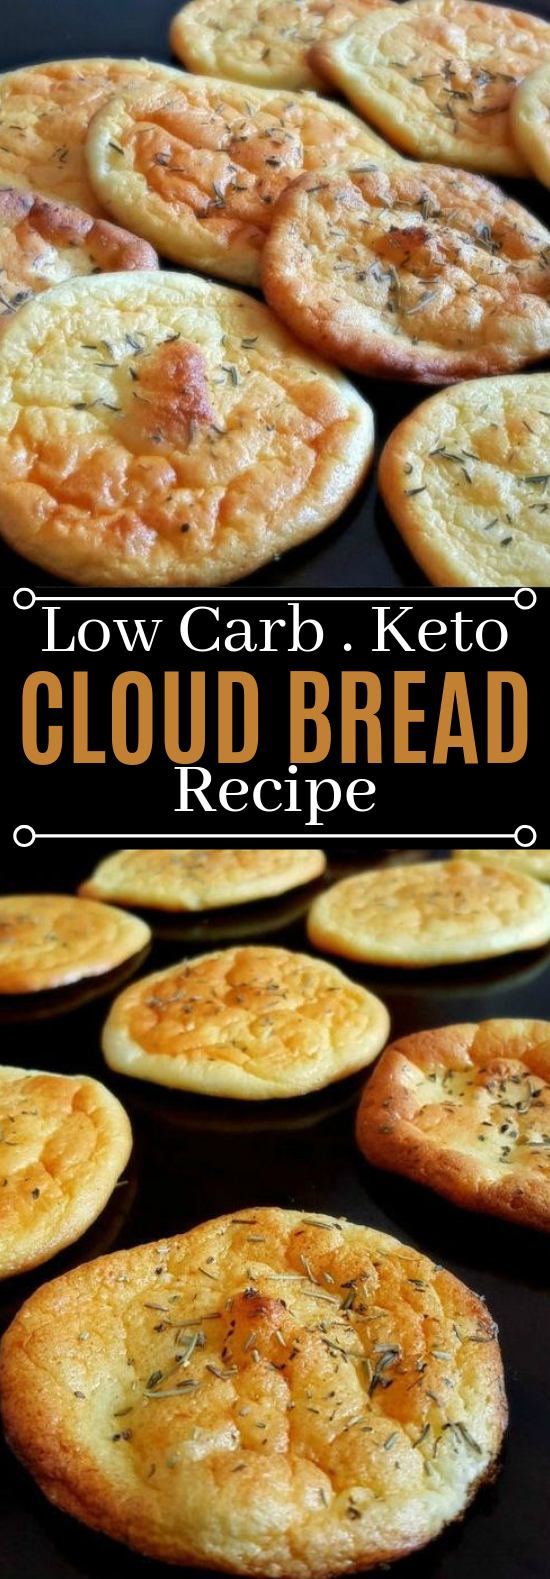 No-Carb Cloud Bread with Only 4 Ingredients #healthy #keto